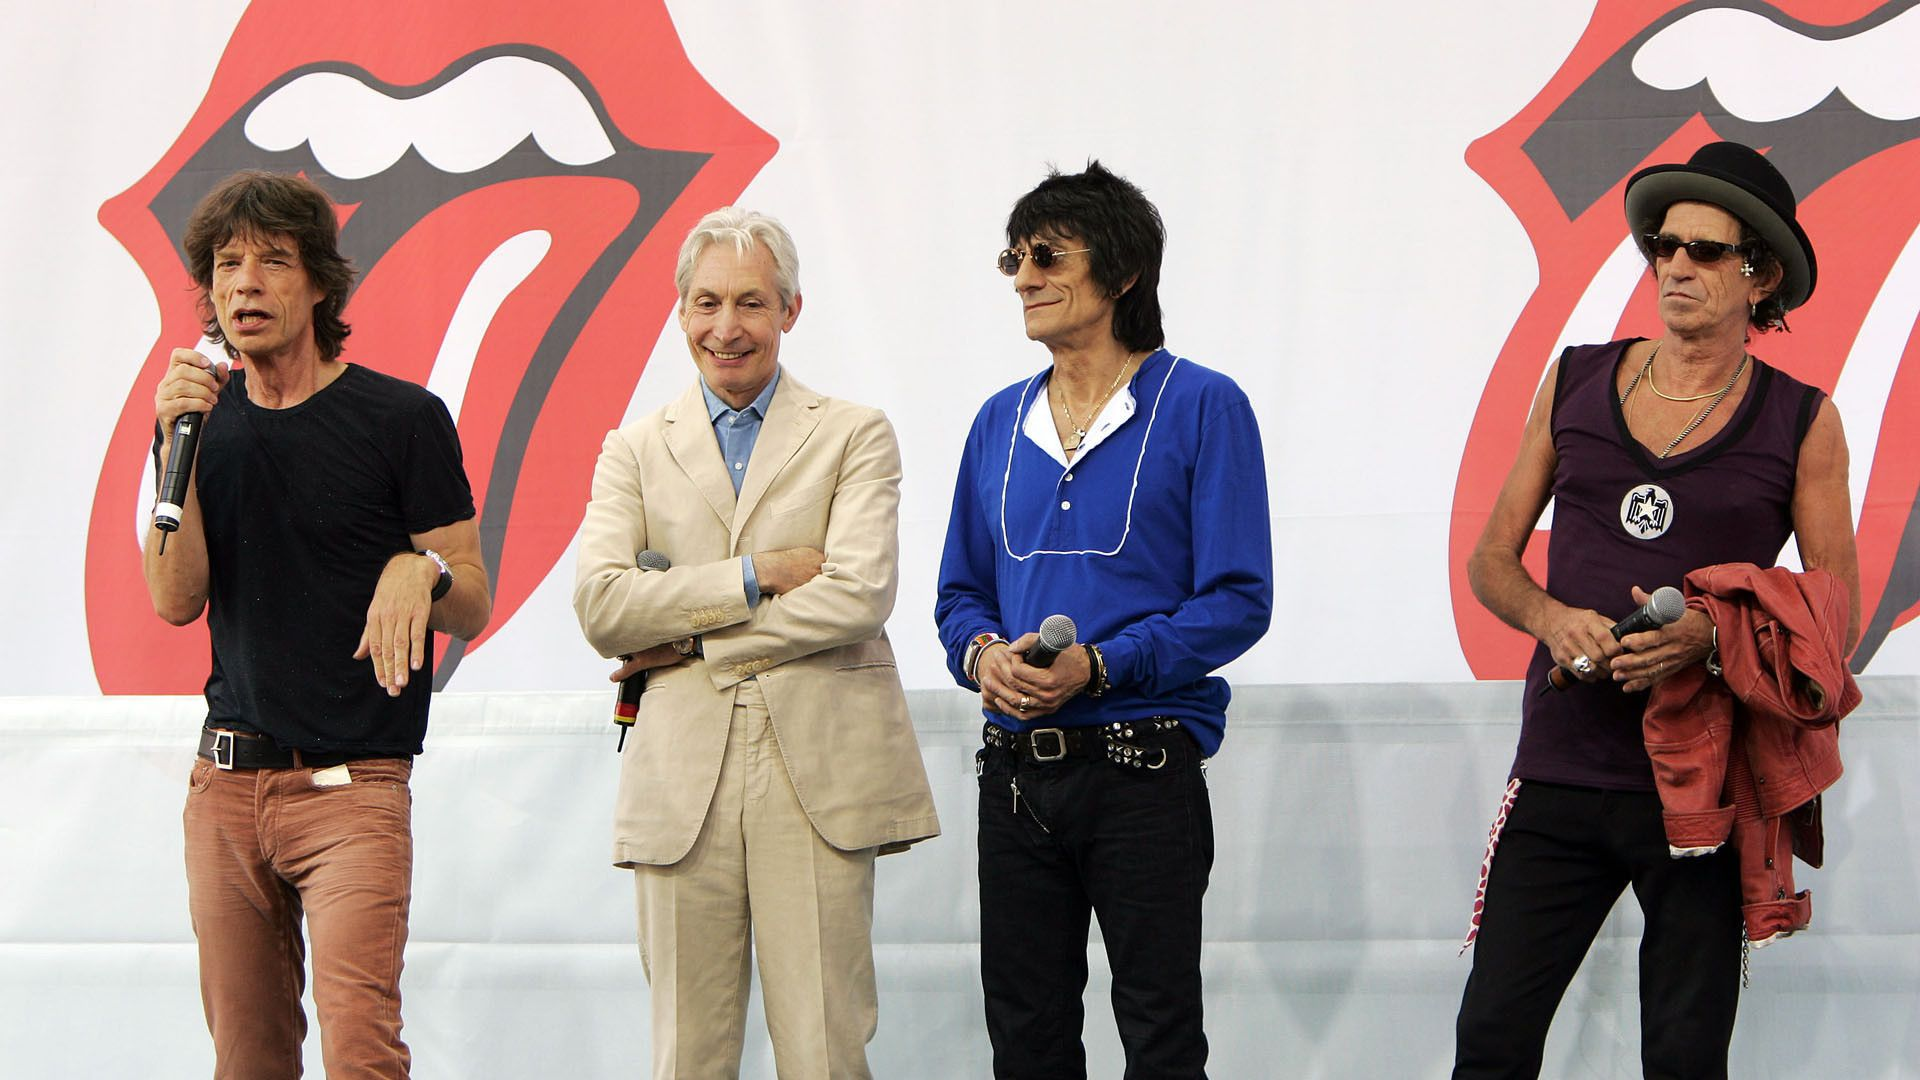 Rolling Stones background computer